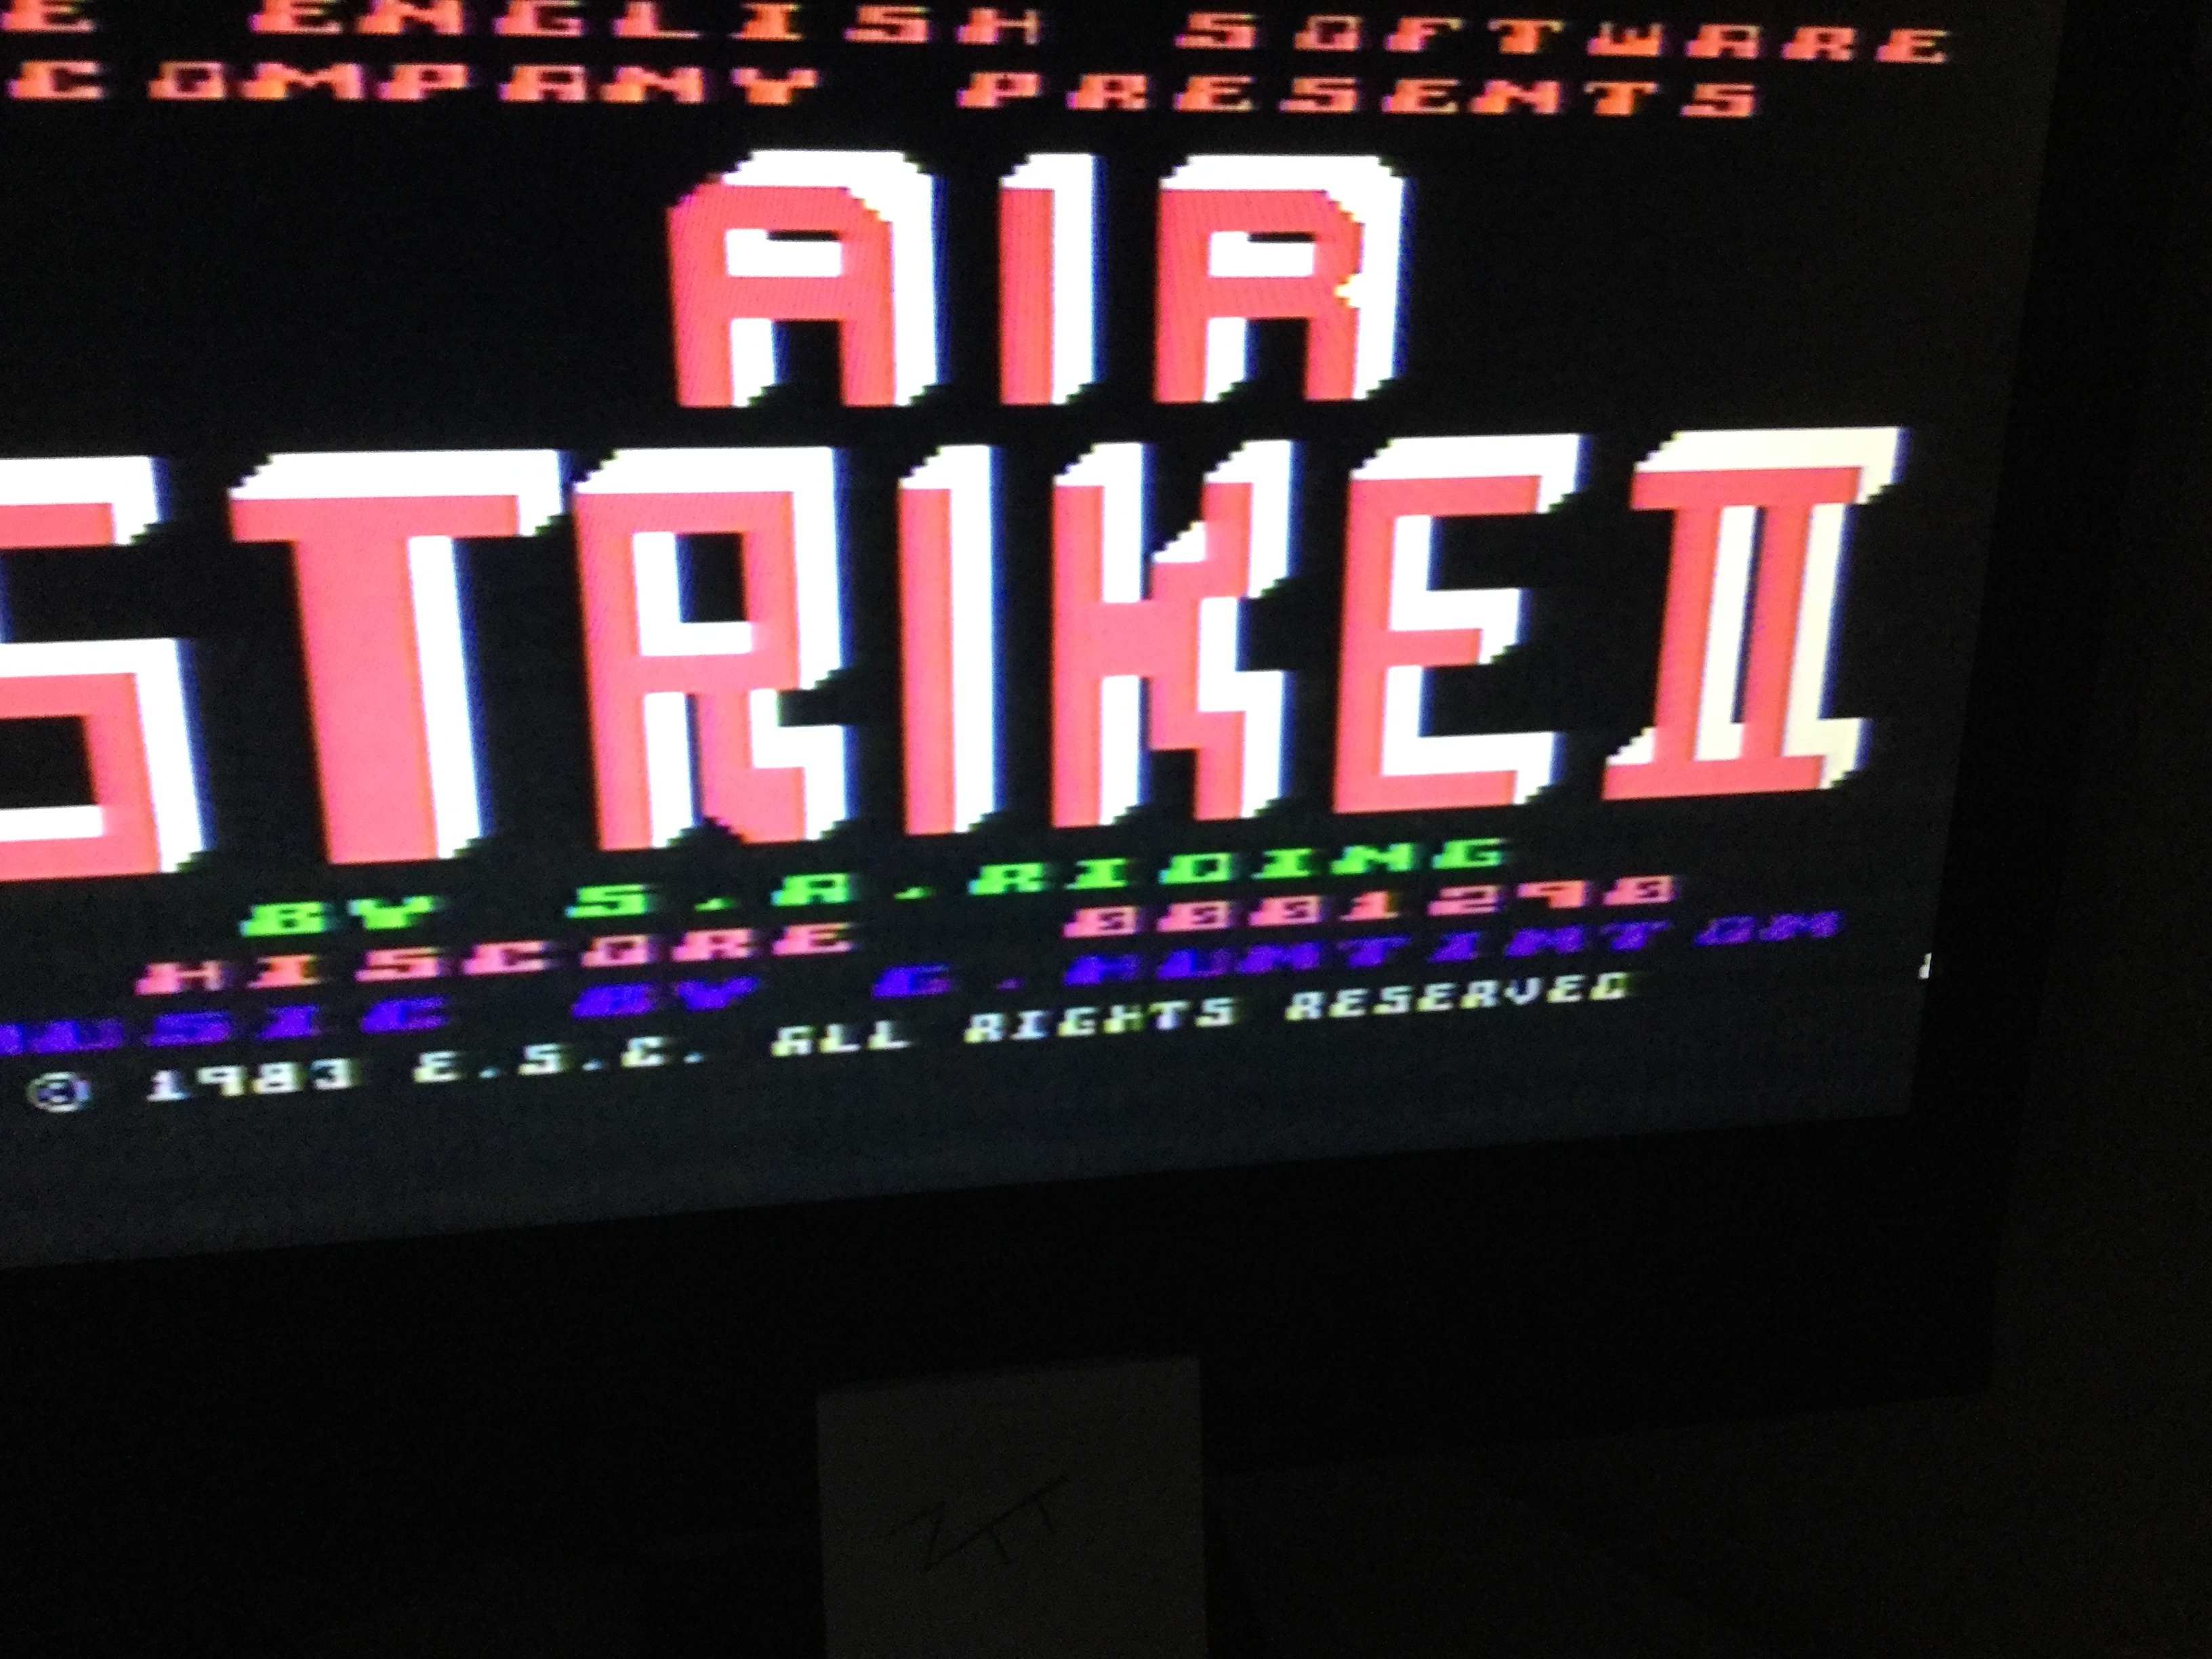 Frankie: Airstrike II (Atari 400/800/XL/XE) 1,290 points on 2018-08-29 12:50:40